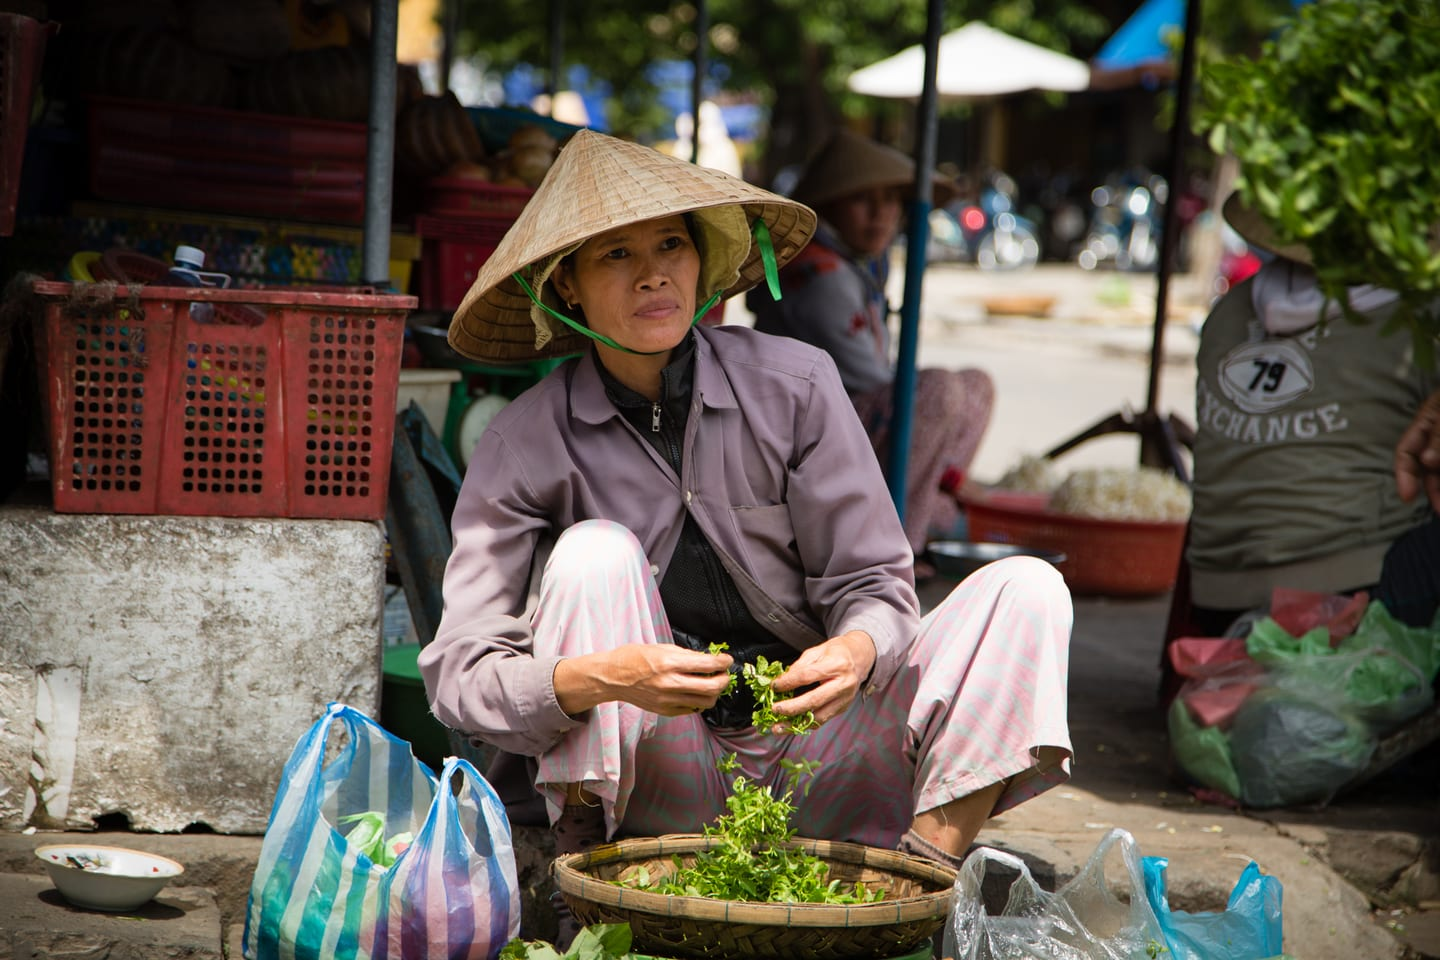 A local trader in Vietnam